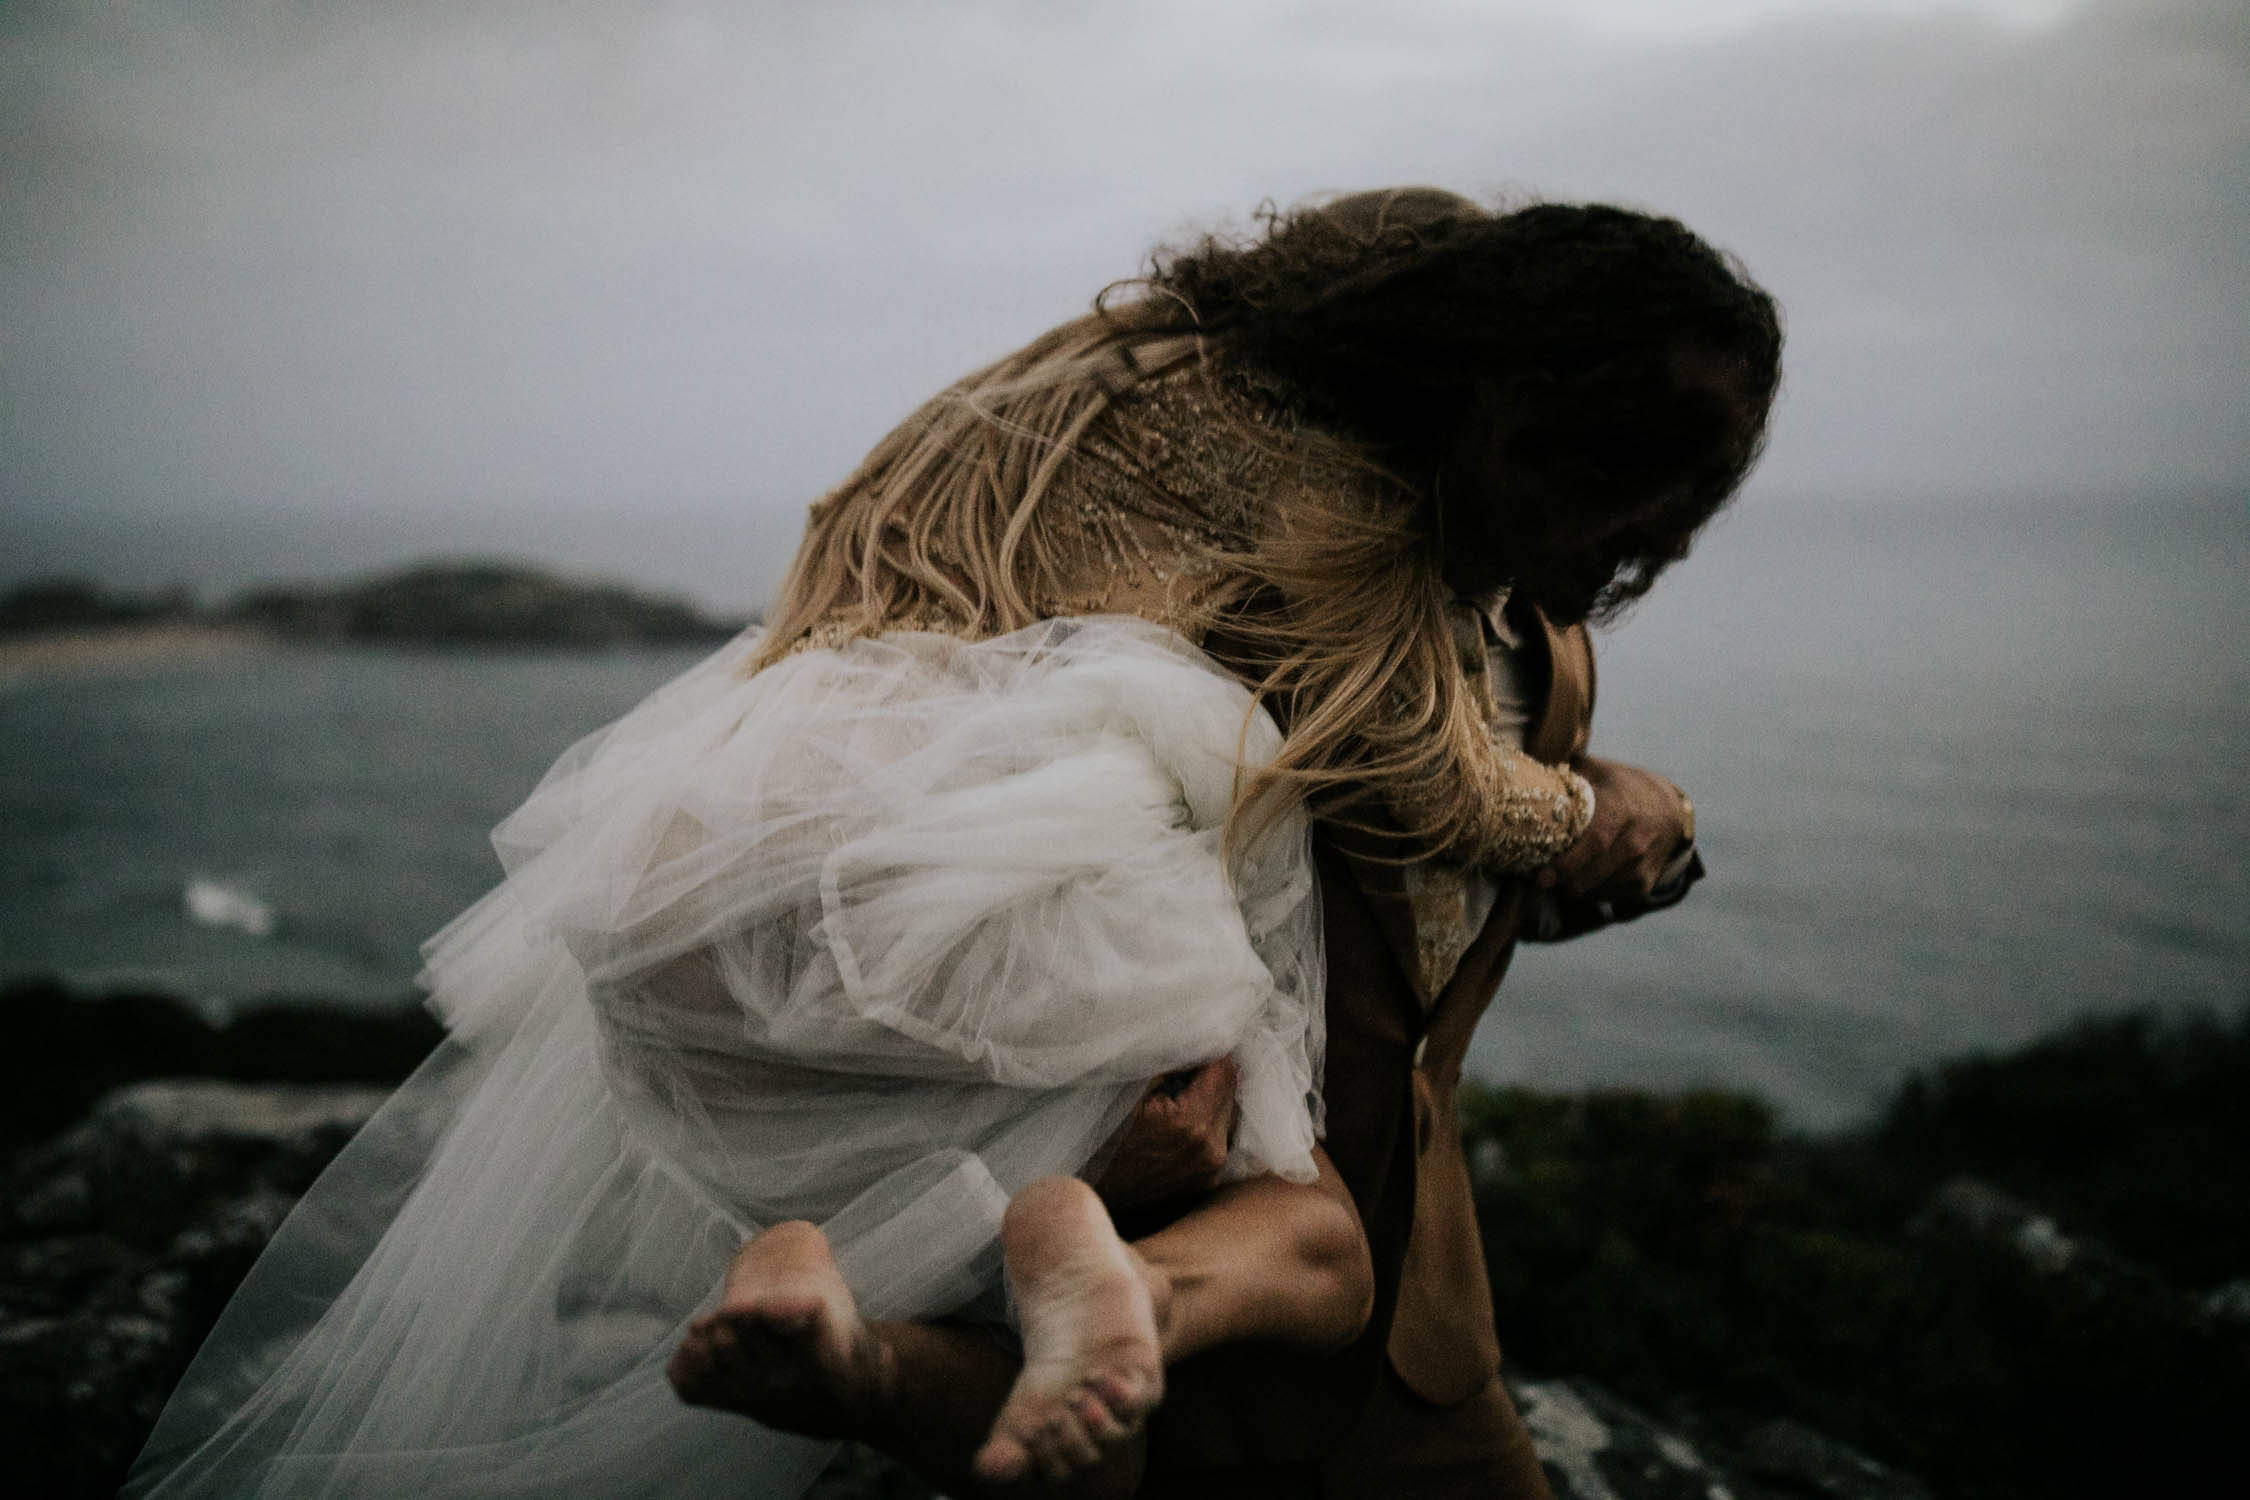 Groom carries barefoot bride on the cliffs overlooking the ocean at dusk